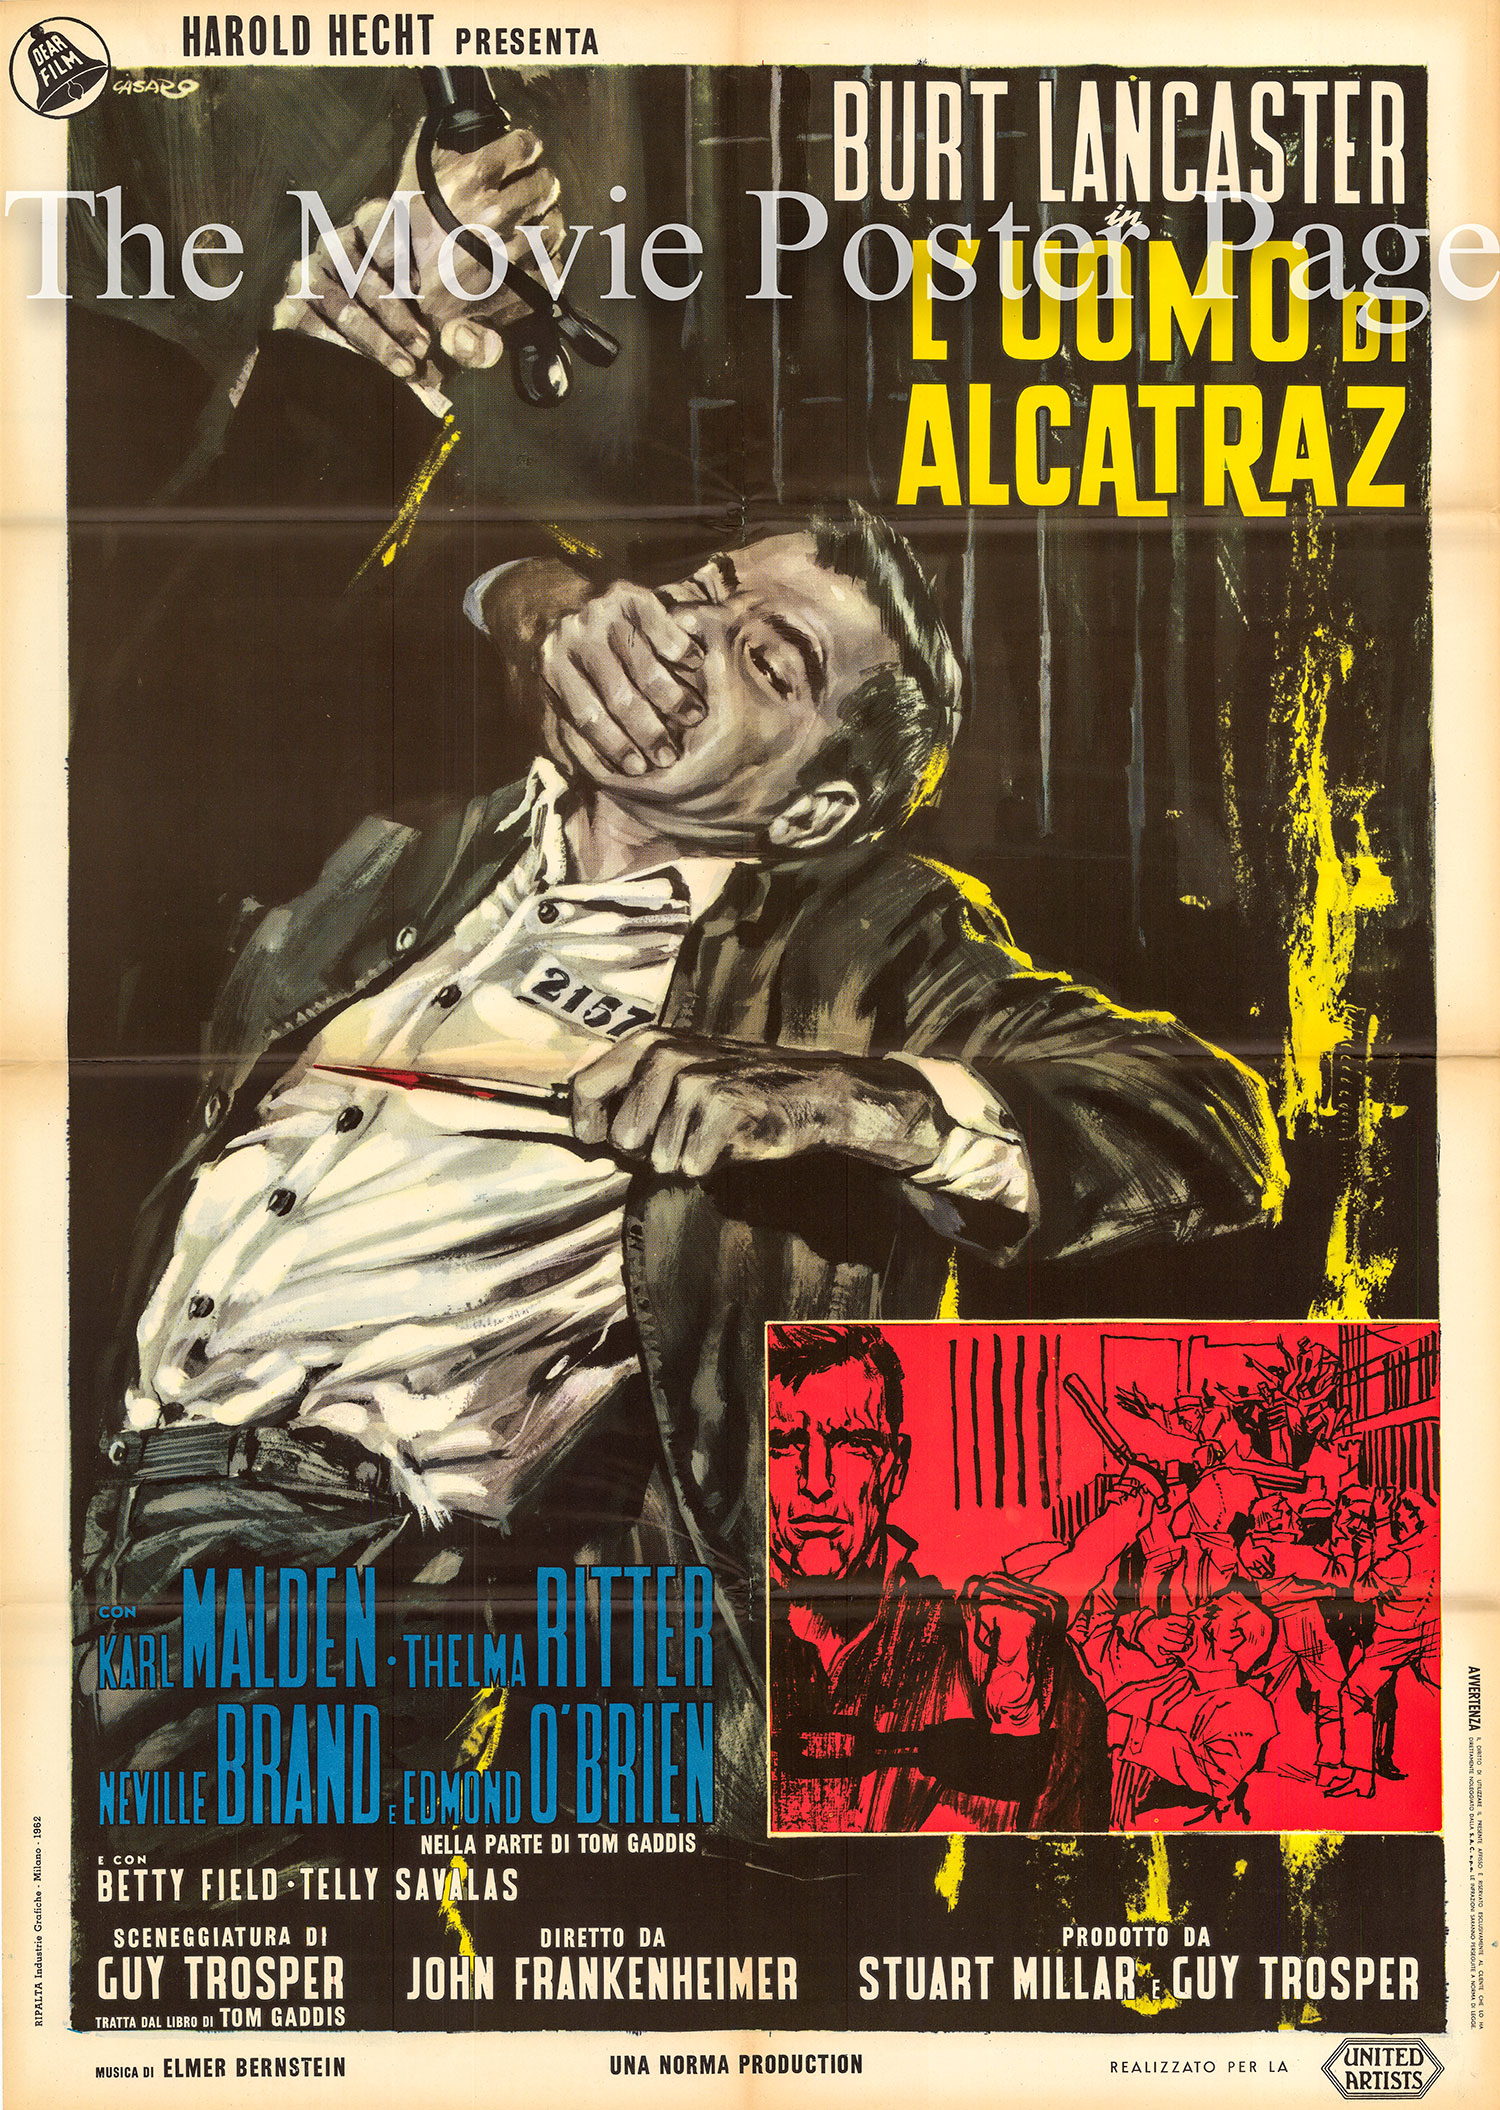 Pictured is an Italian two-sheet poster for the 1962 John Frankenheimer and Charles Crichton film Birdman of Alcatraz, starring Burt Lancaster as Robert Franklin Stroud.